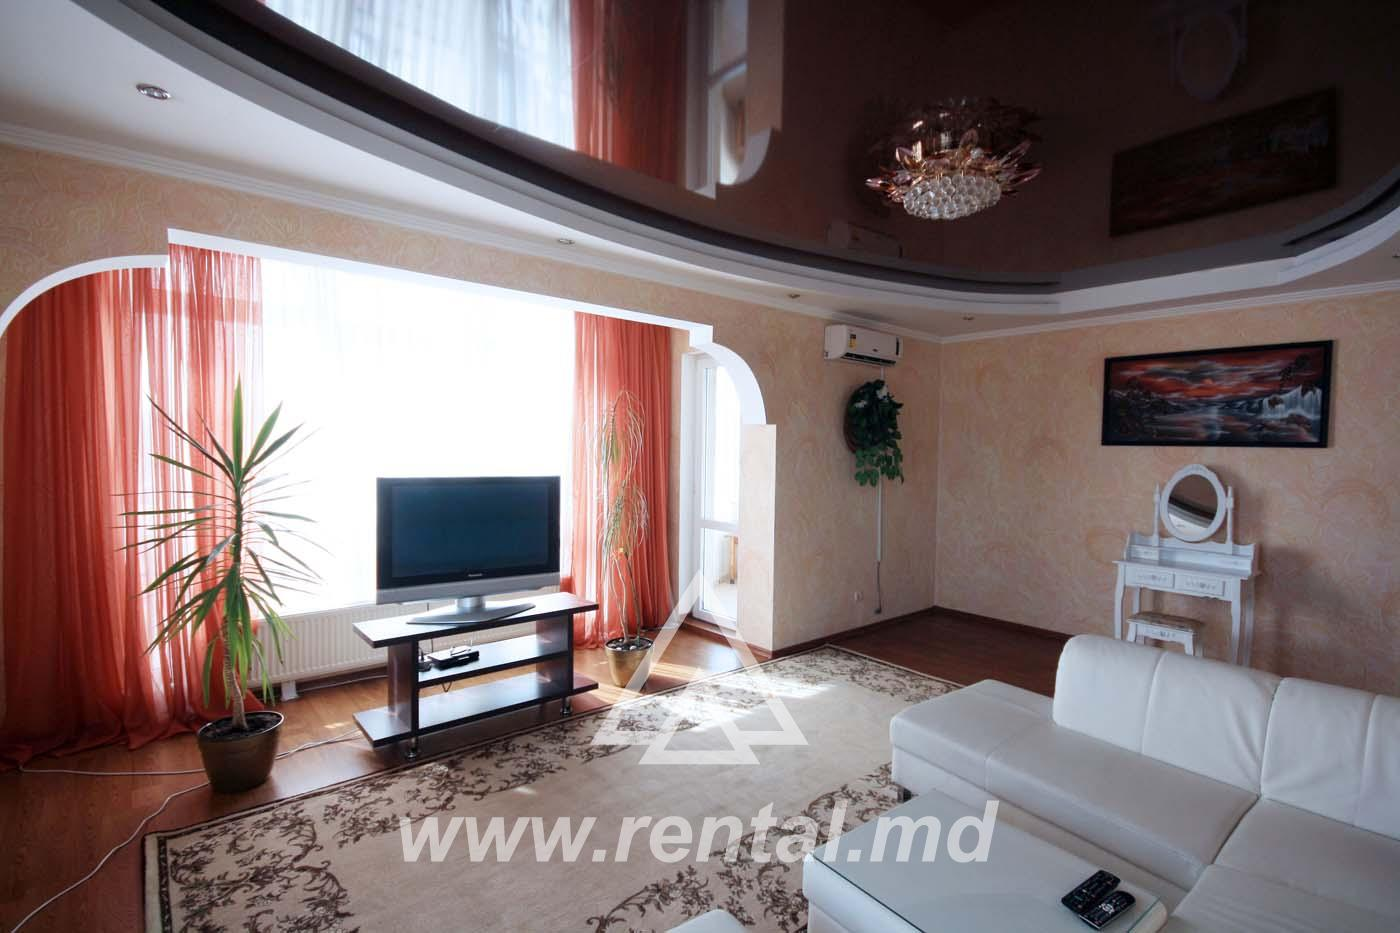 3-rooms apartment for rent in new building